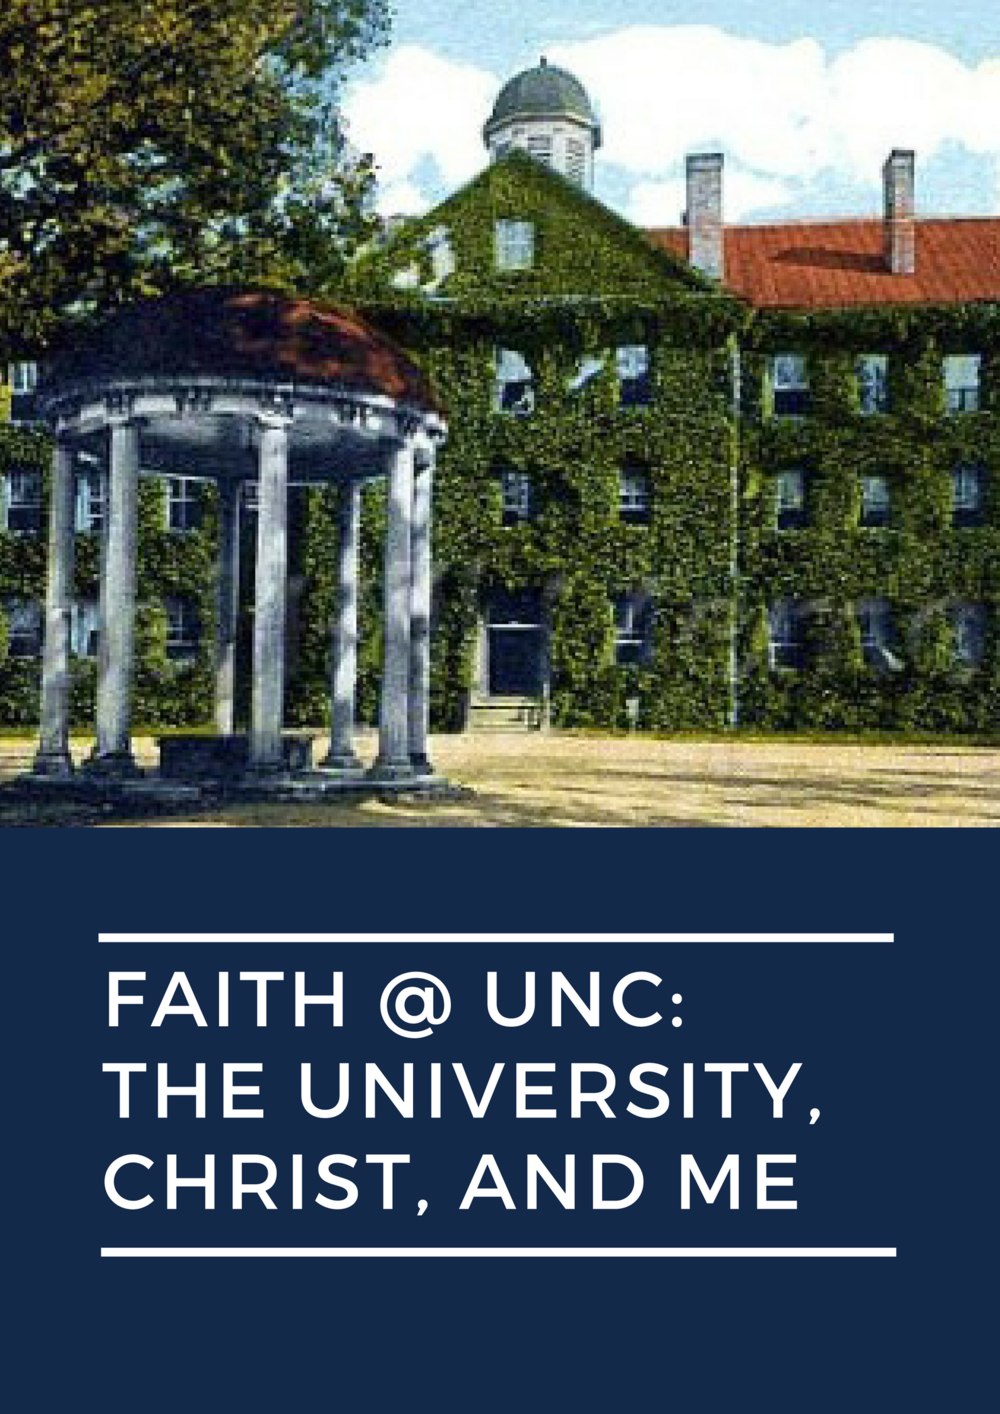 Faith@UNC: The University, Christ and Me